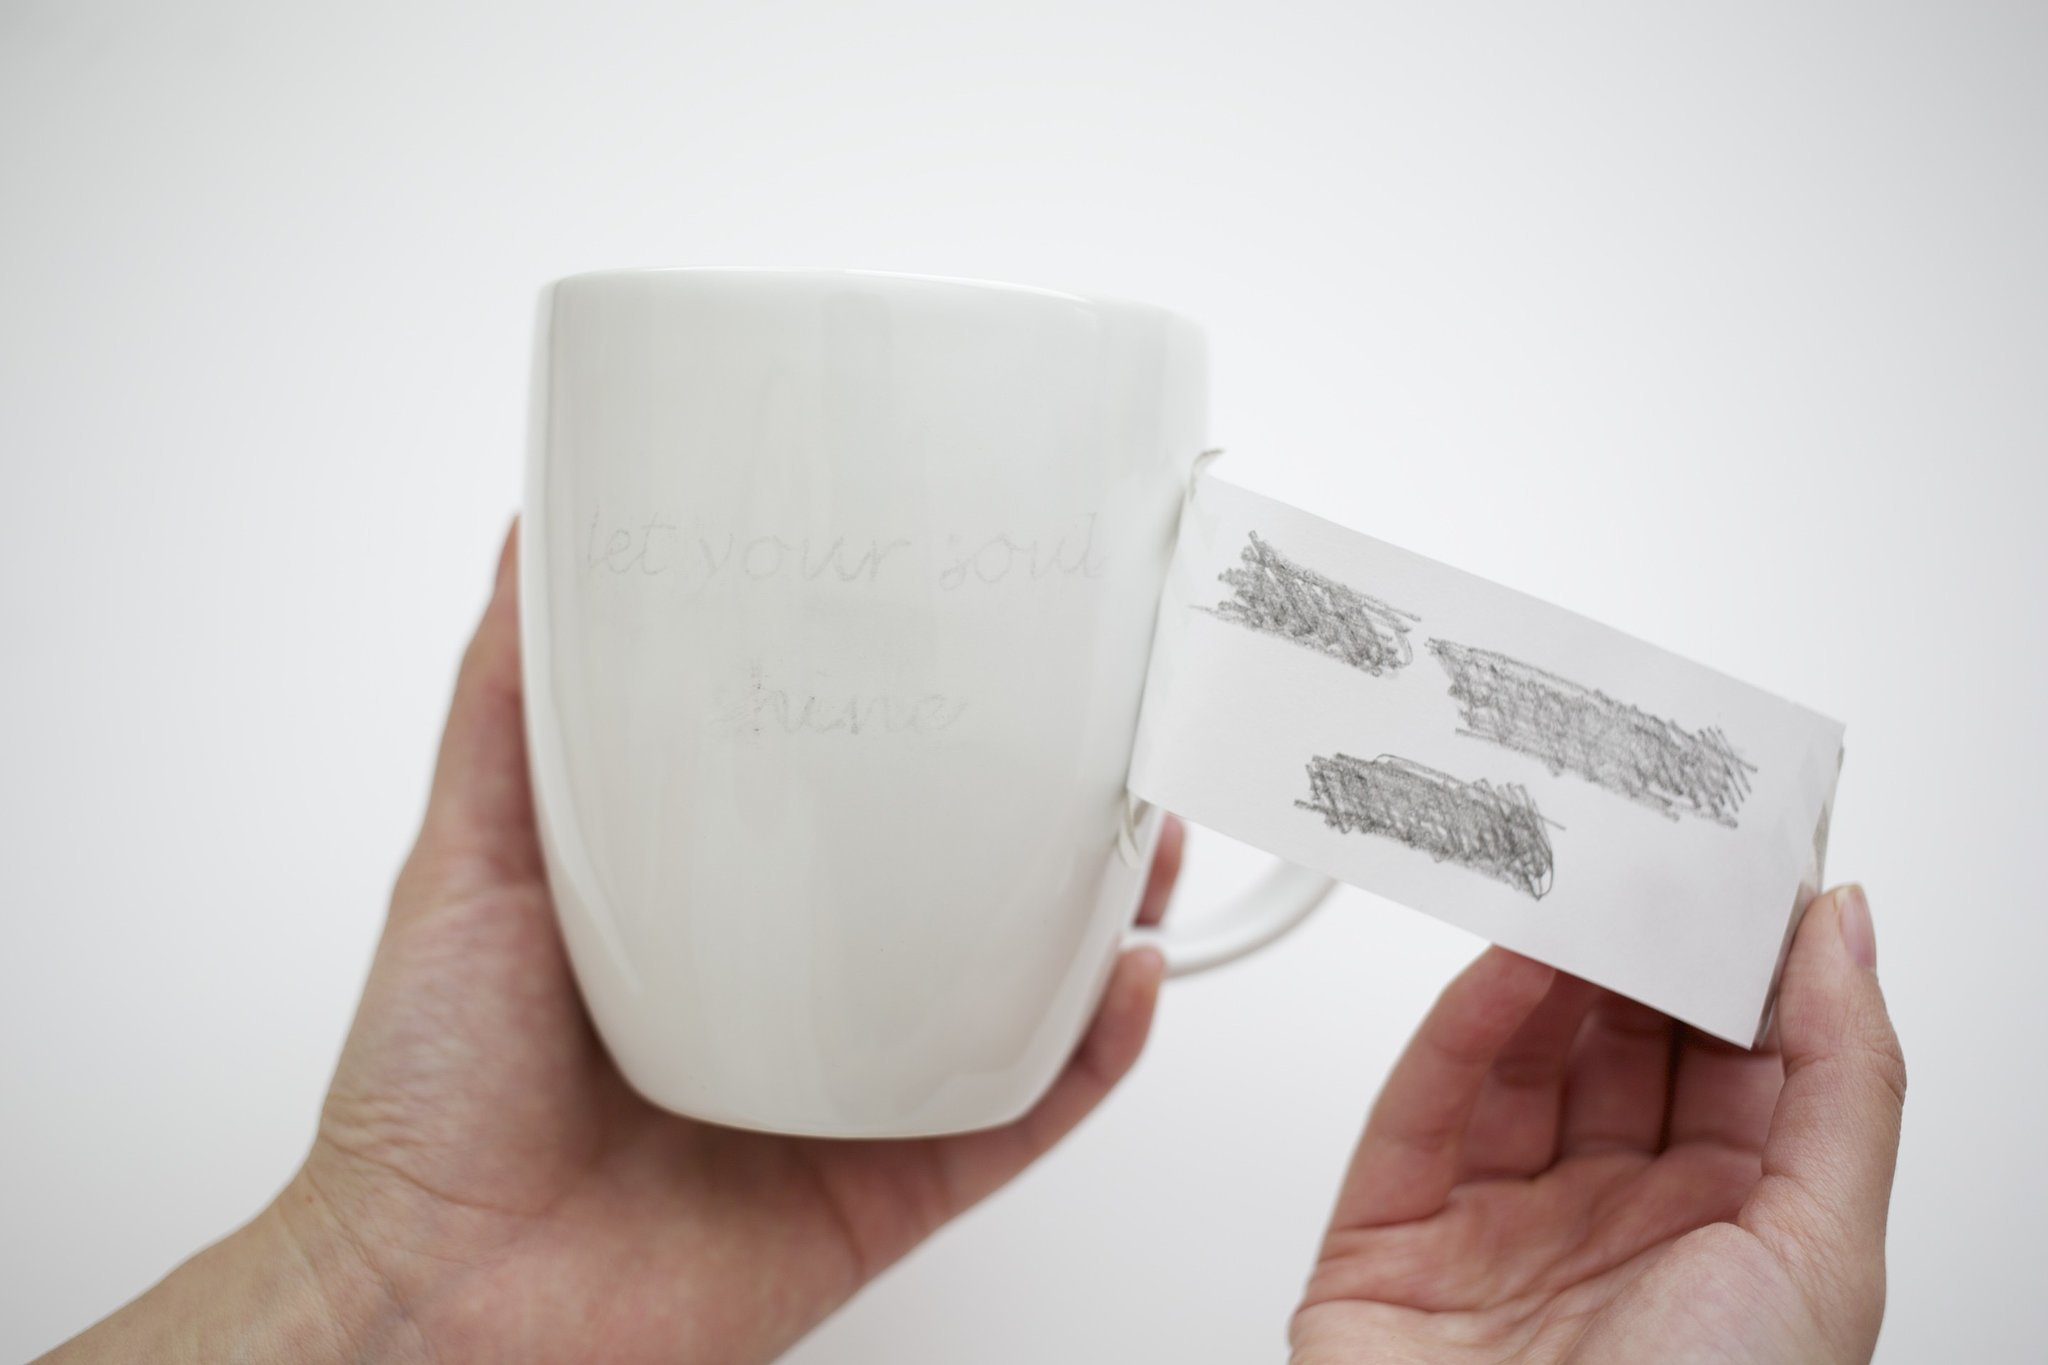 Diy quote stenciled sharpie mugs popsugar smart living step 5 solutioingenieria Image collections